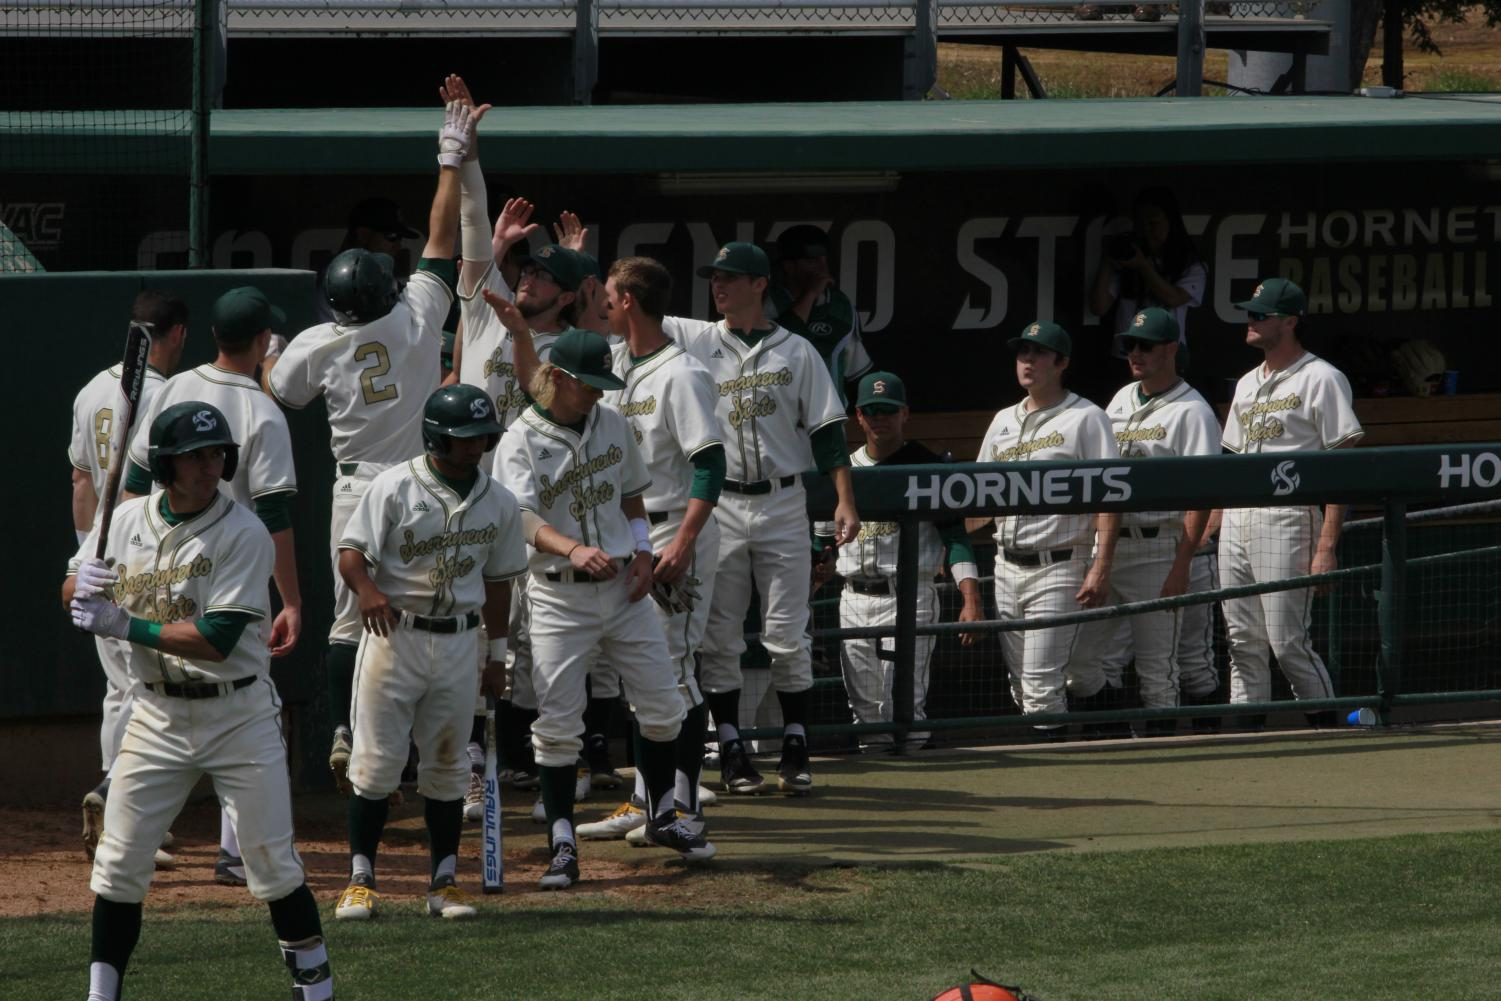 Sac State senior outfielder Bronson Grubbs (#2) jumps and high-fives teammate, junior right-handed pitcher Austin Roberts, after scoring a run in a 5-3 loss to UT Rio Grande Valley Sunday at John Smith Field. Grubbs had one hit, one RBI and one run scored in the loss.